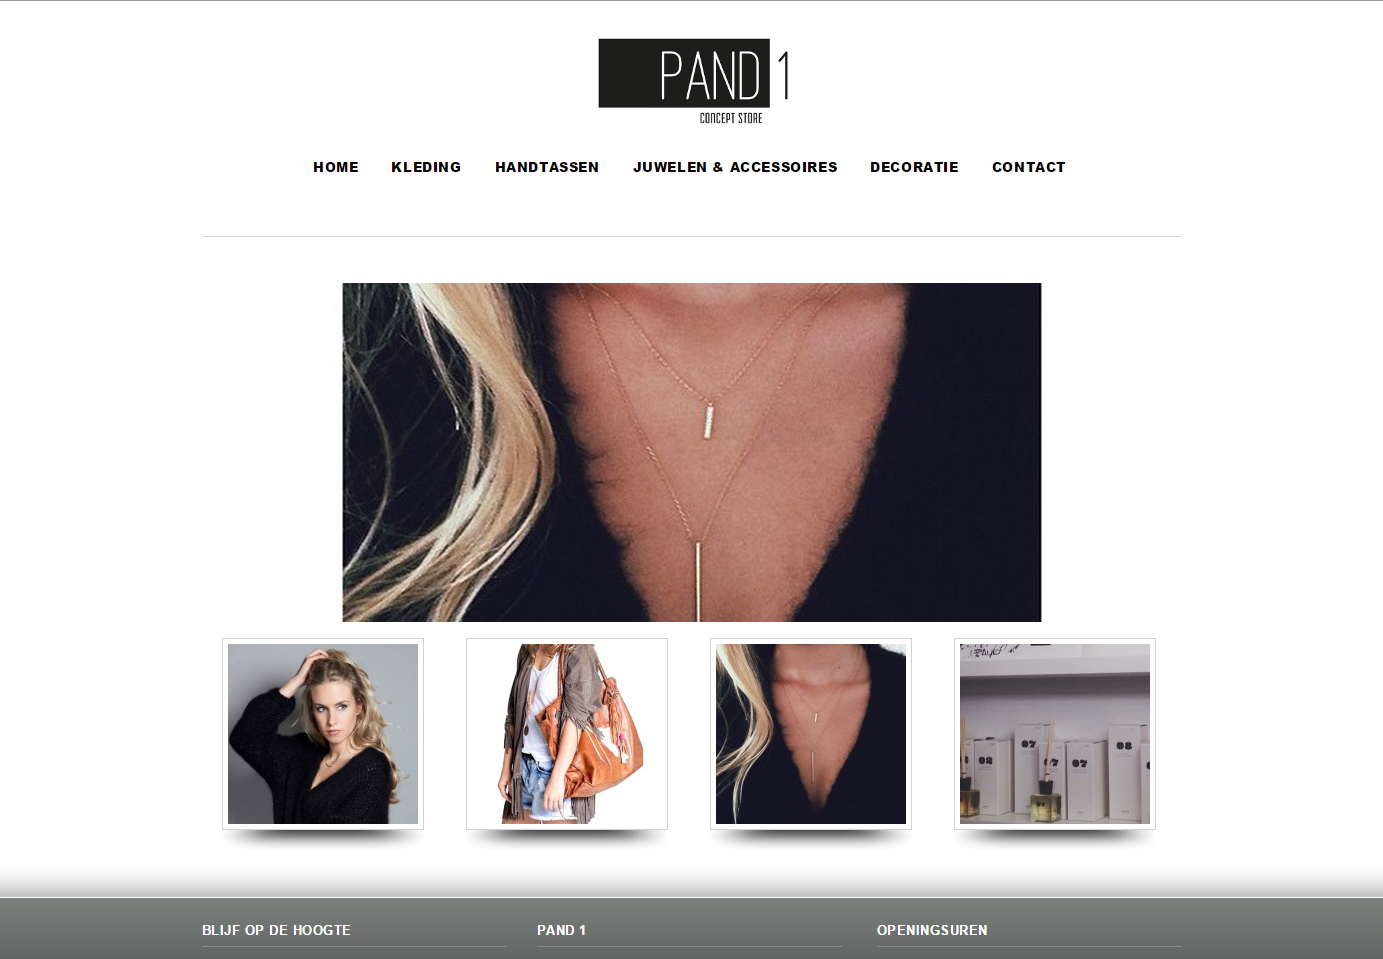 Pand 1 Concept Store